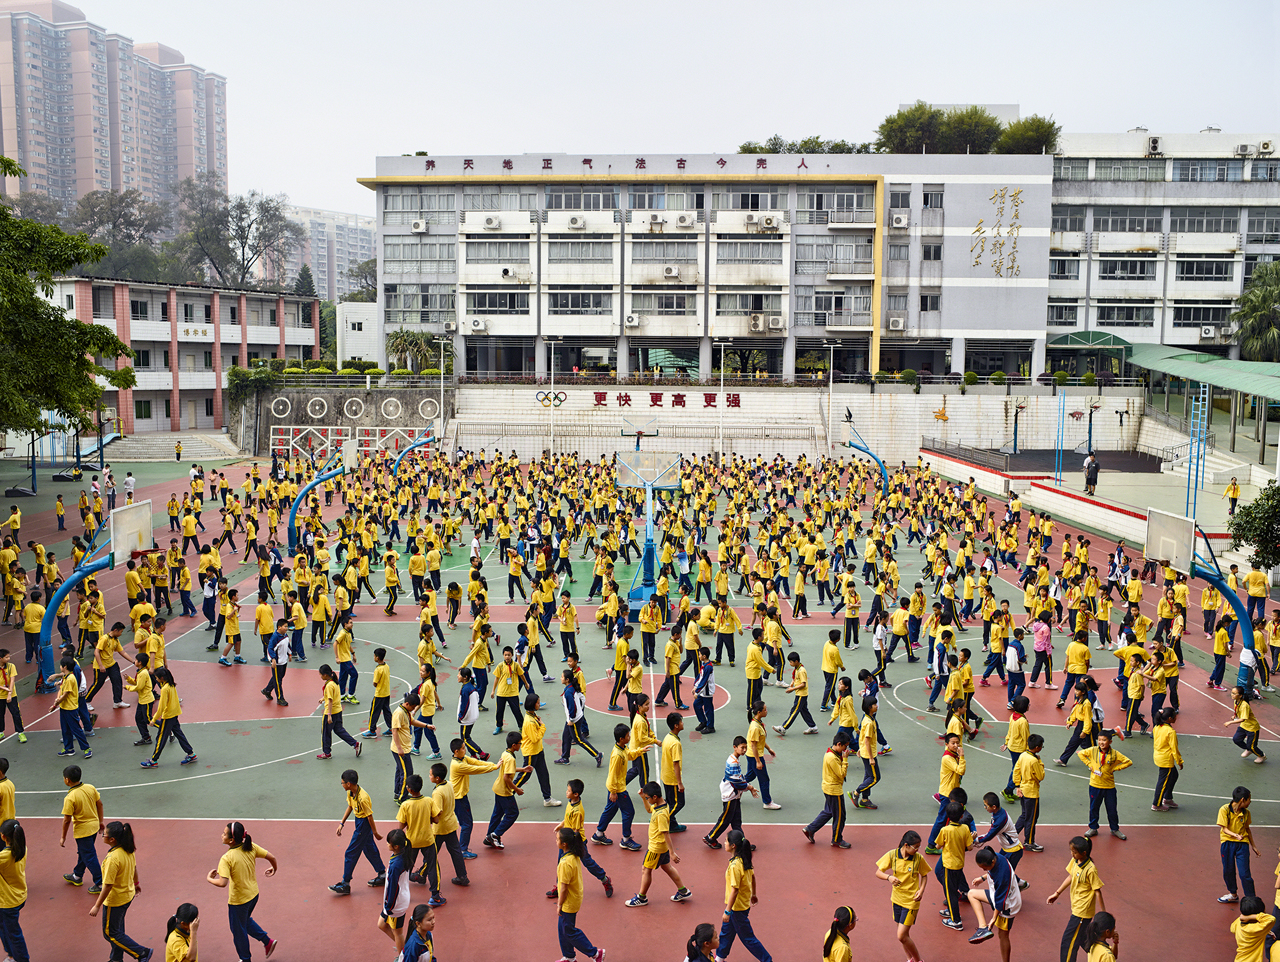 JAMES MOLLISON,  Affiliated Primary School of South China Normal University, Guangzhou, China,  June 13, 2014